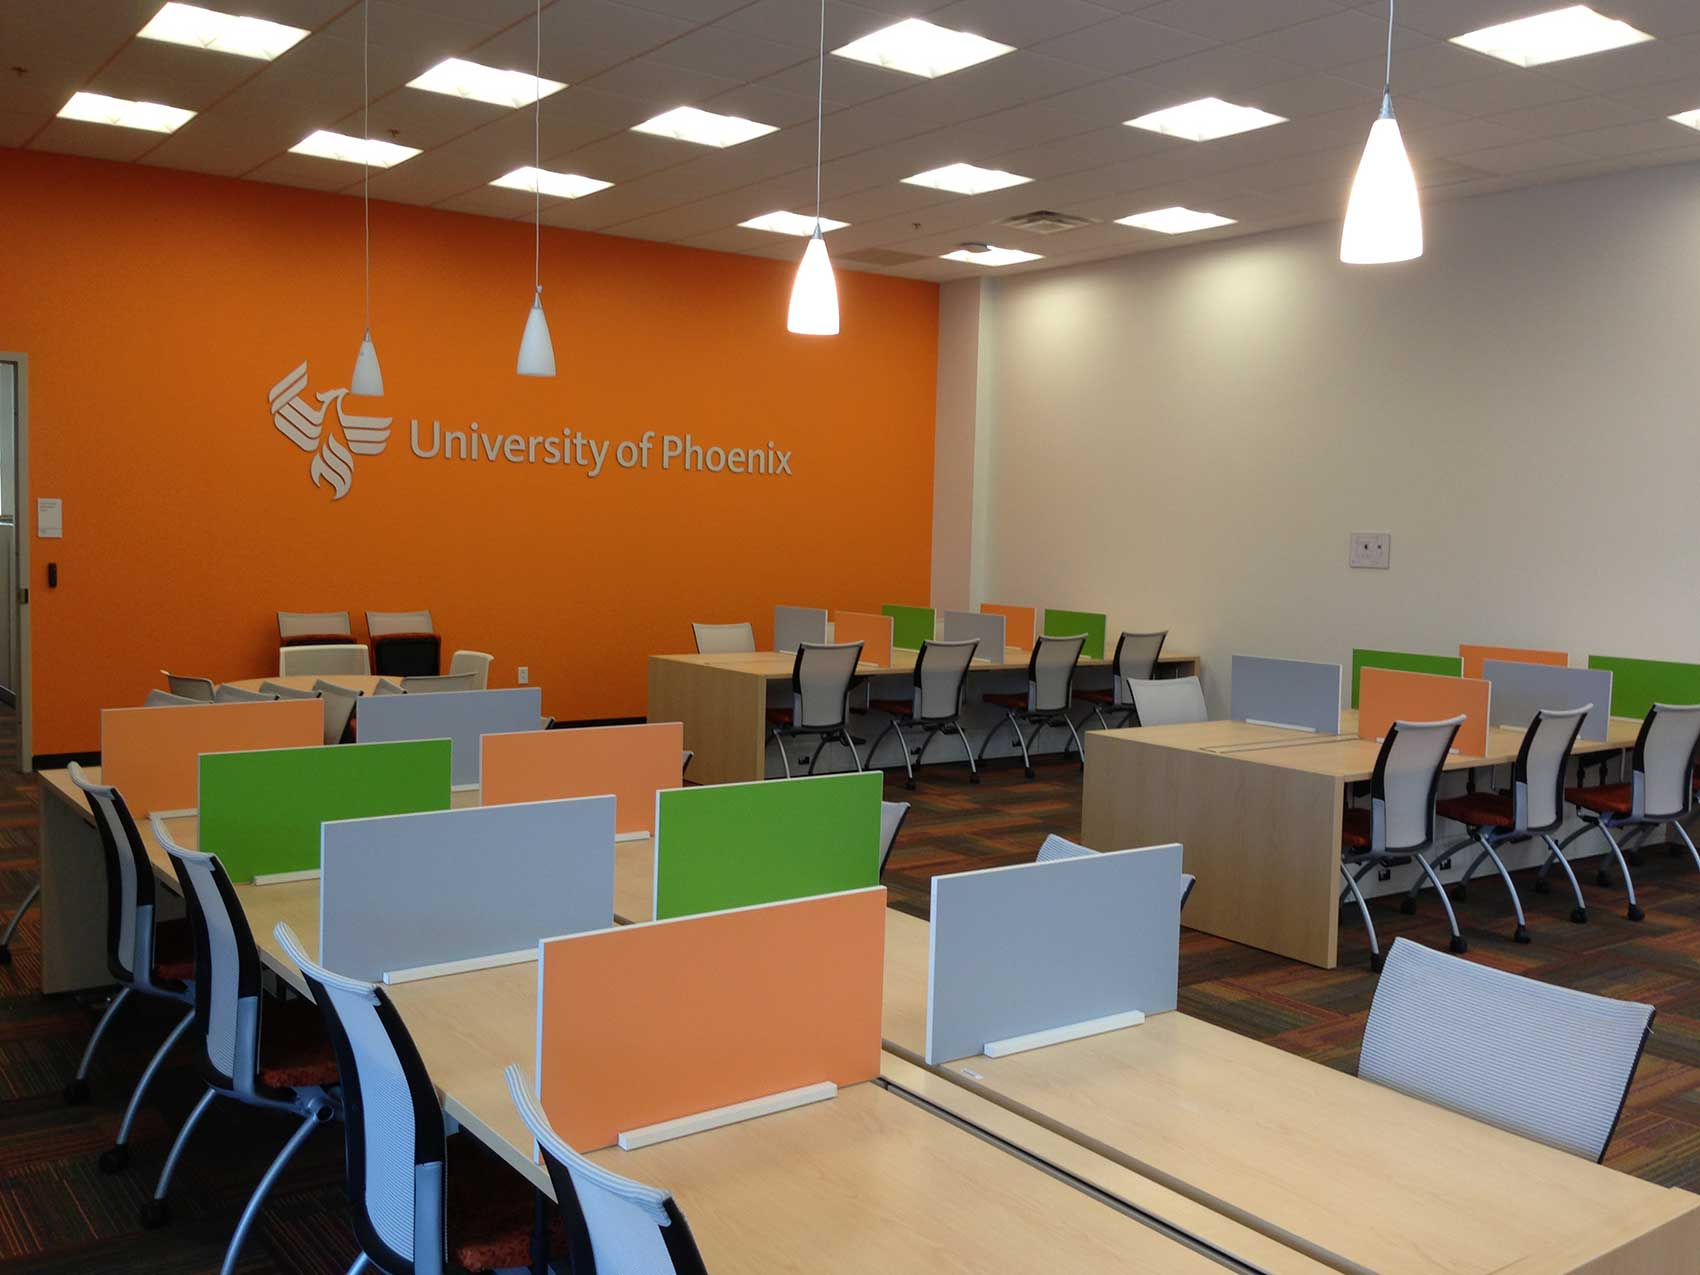 gallery photo : University of Phoenix Office Space Interior Buildout